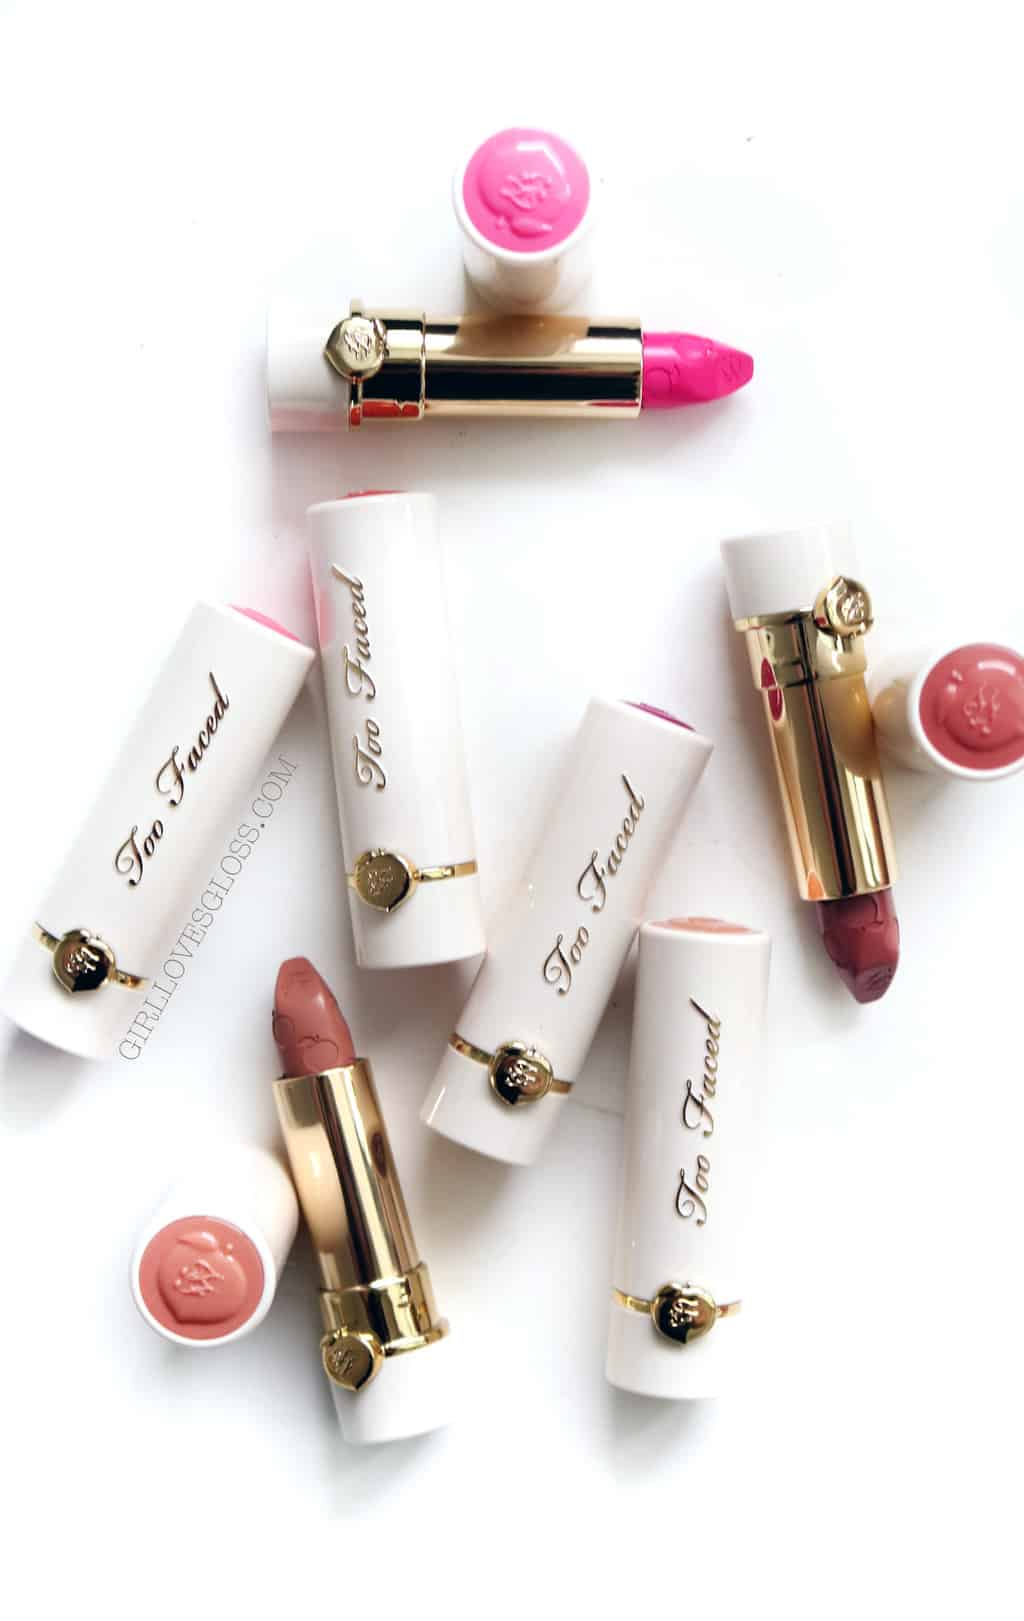 Too Faced Peach Kiss Lipsticks Giveaway